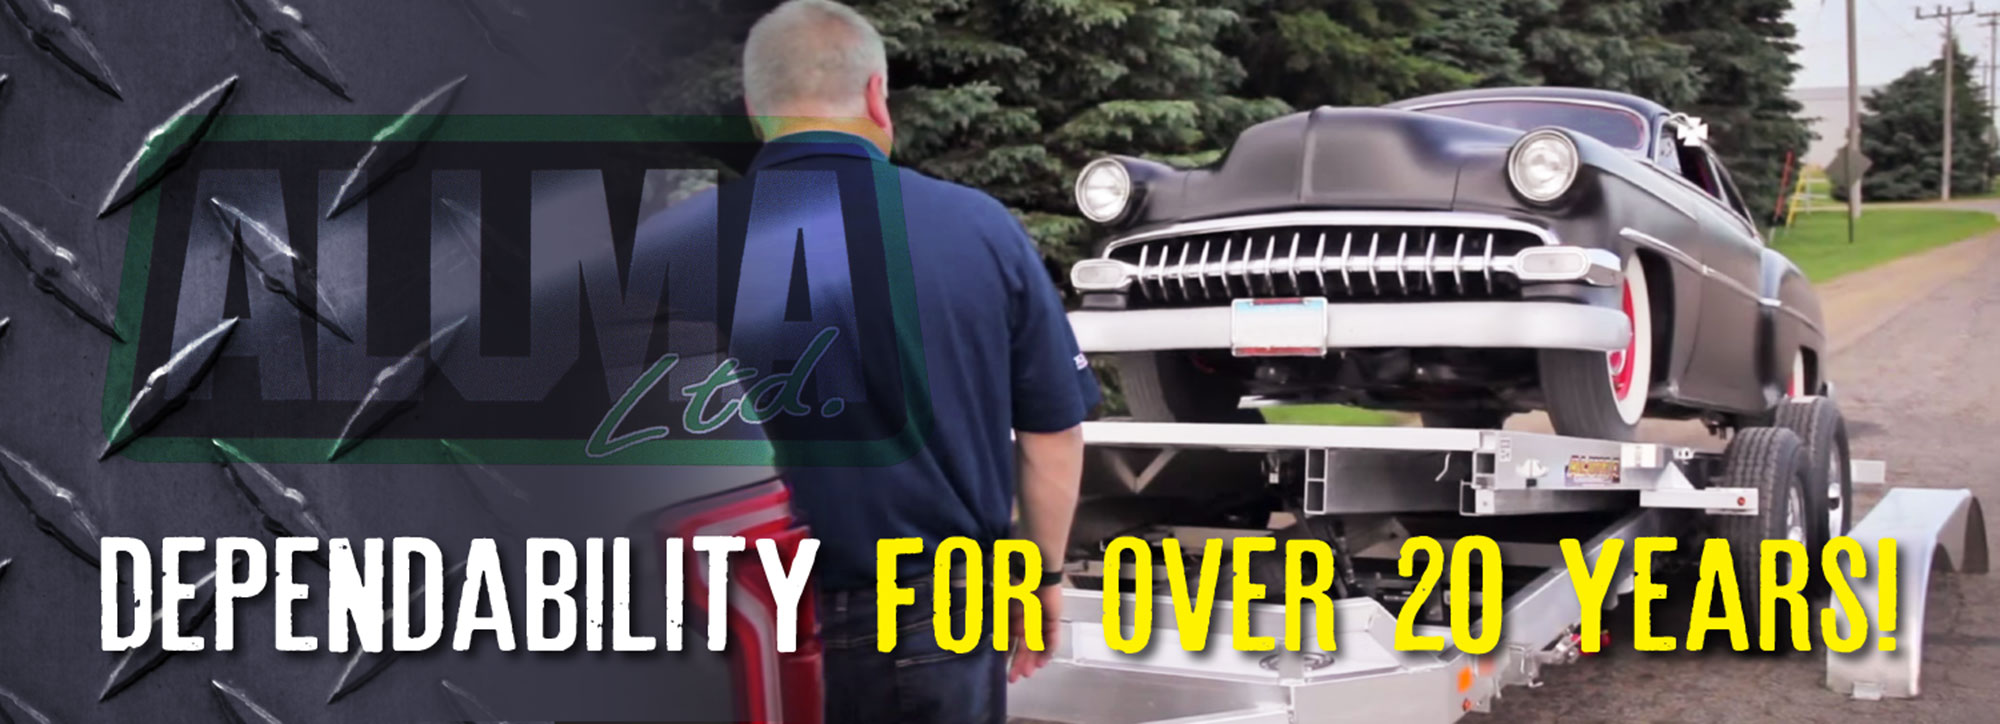 Dependability For Over 20 Years